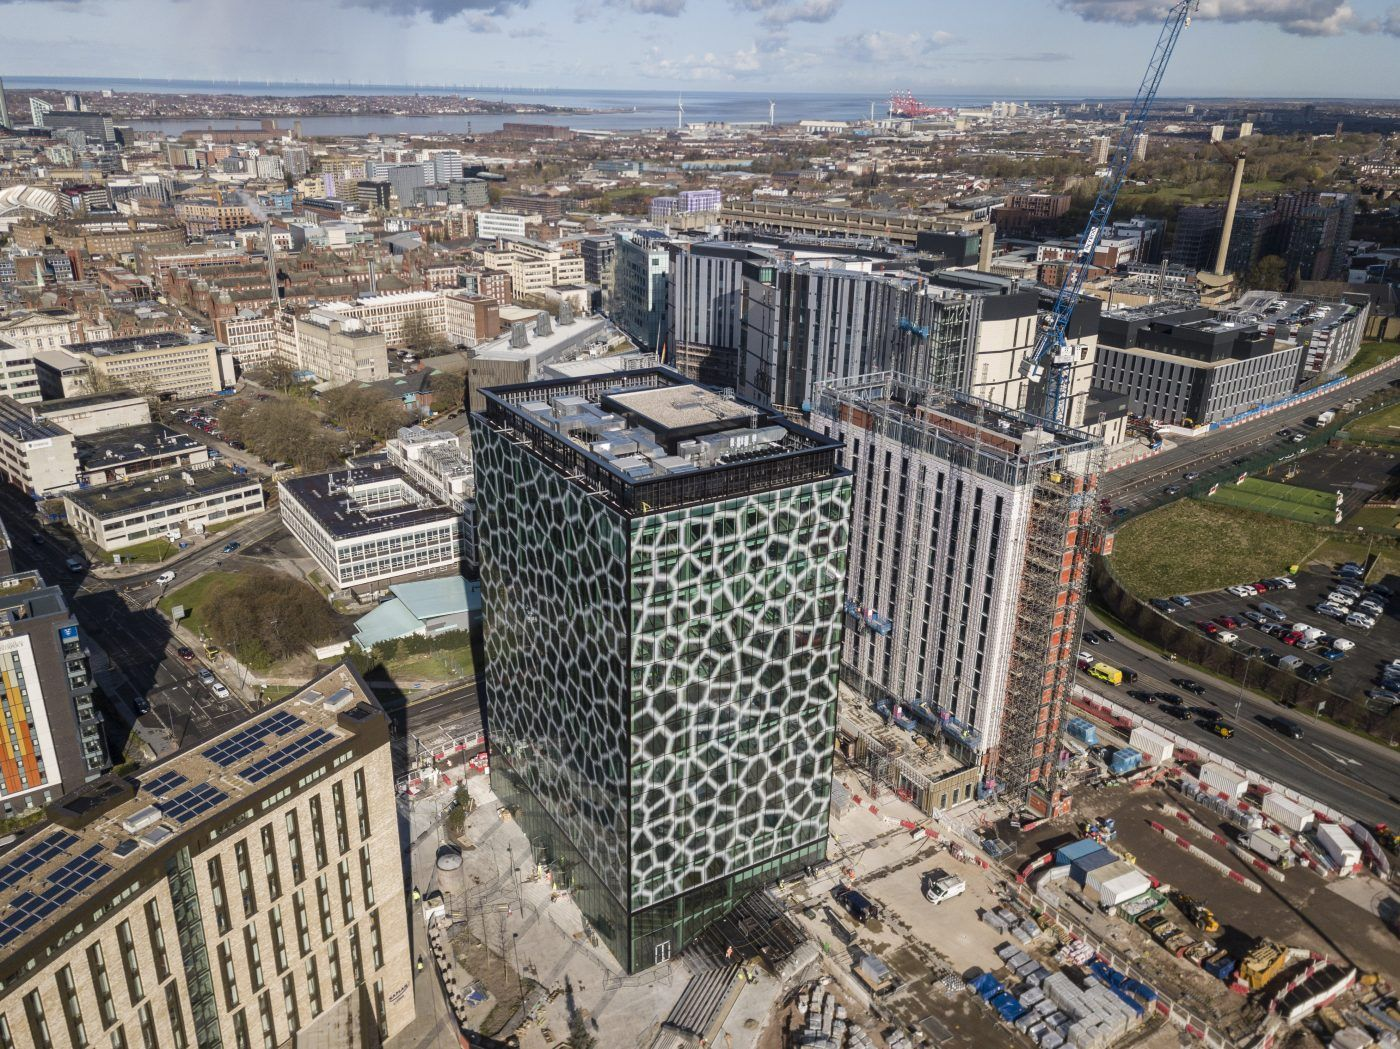 Liverpool's new Mayor and the City Region's Metro Mayor will officially open one of the world's healthiest buildings today (Friday, 21 May).